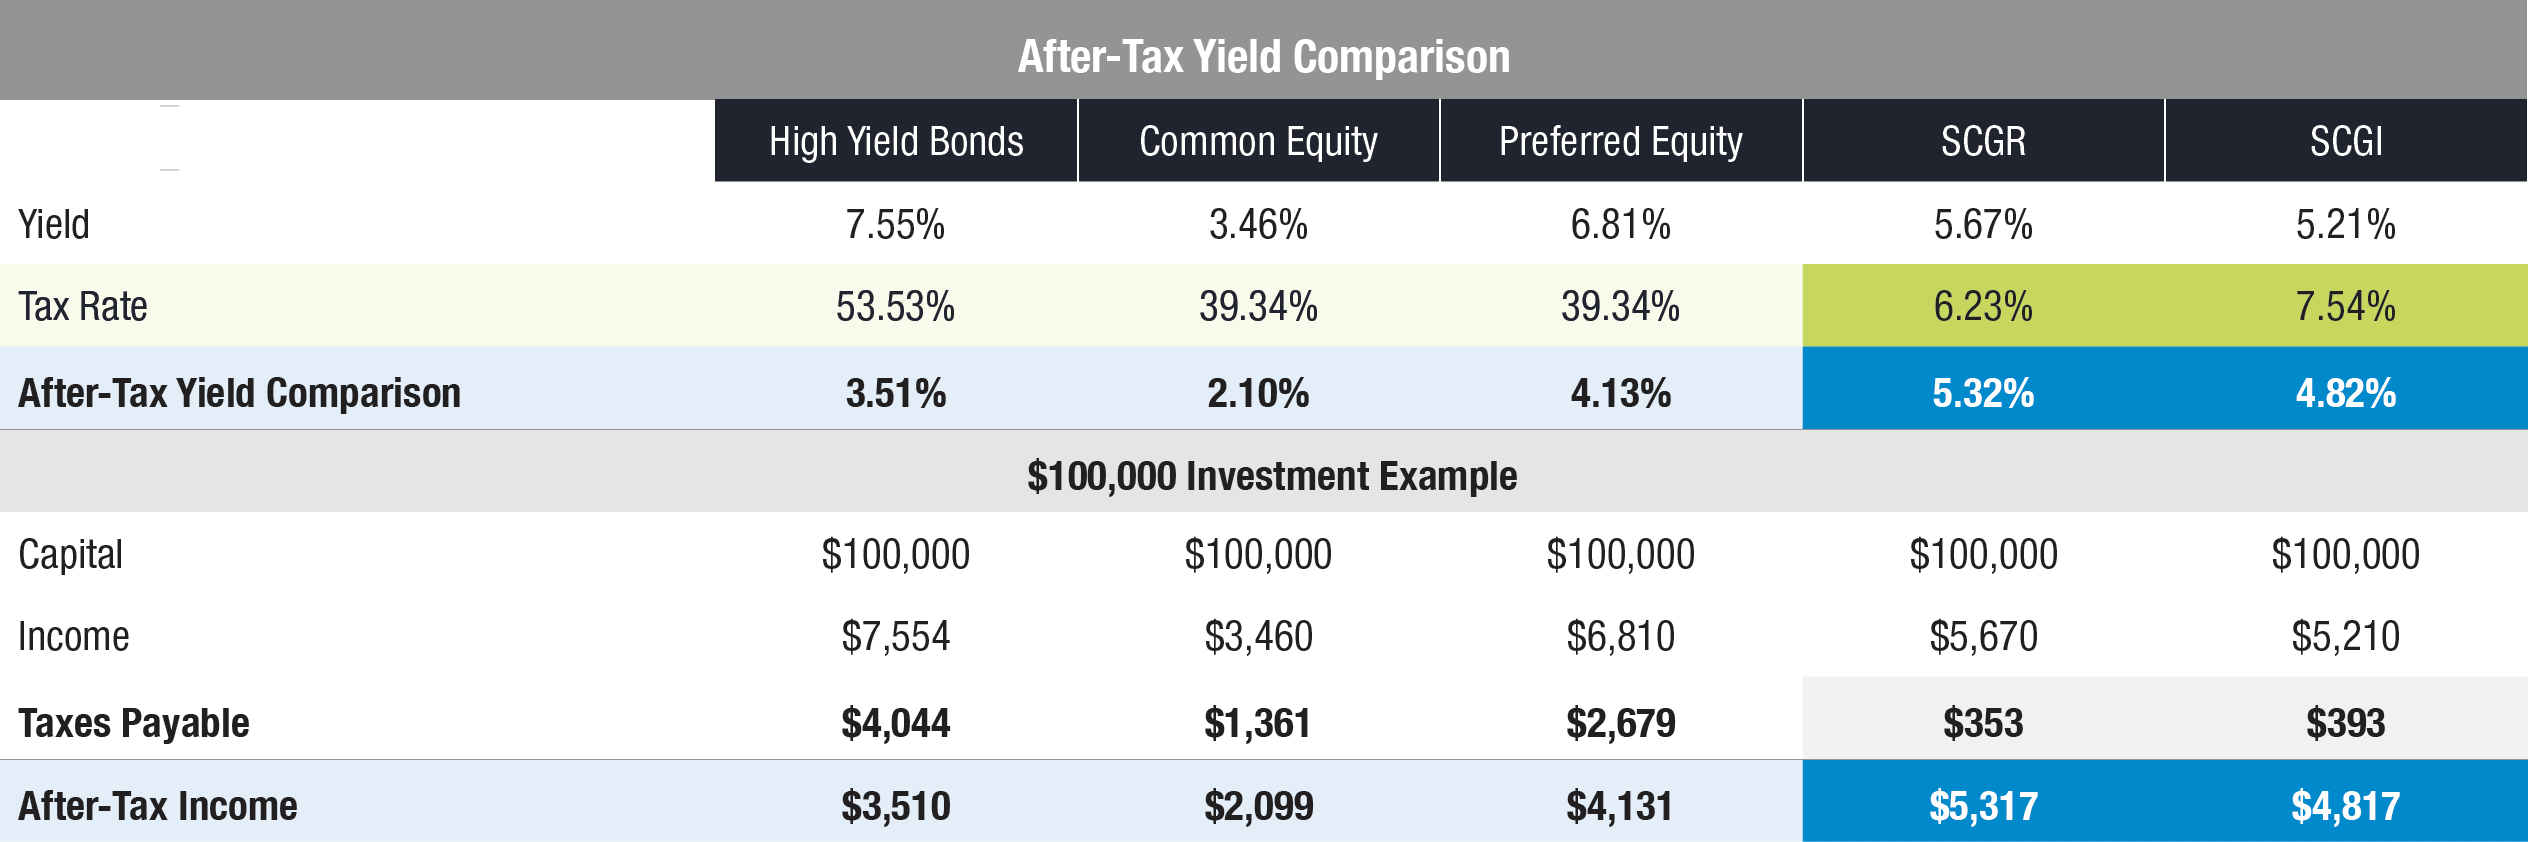 Table - After-Tax Yield Comparison